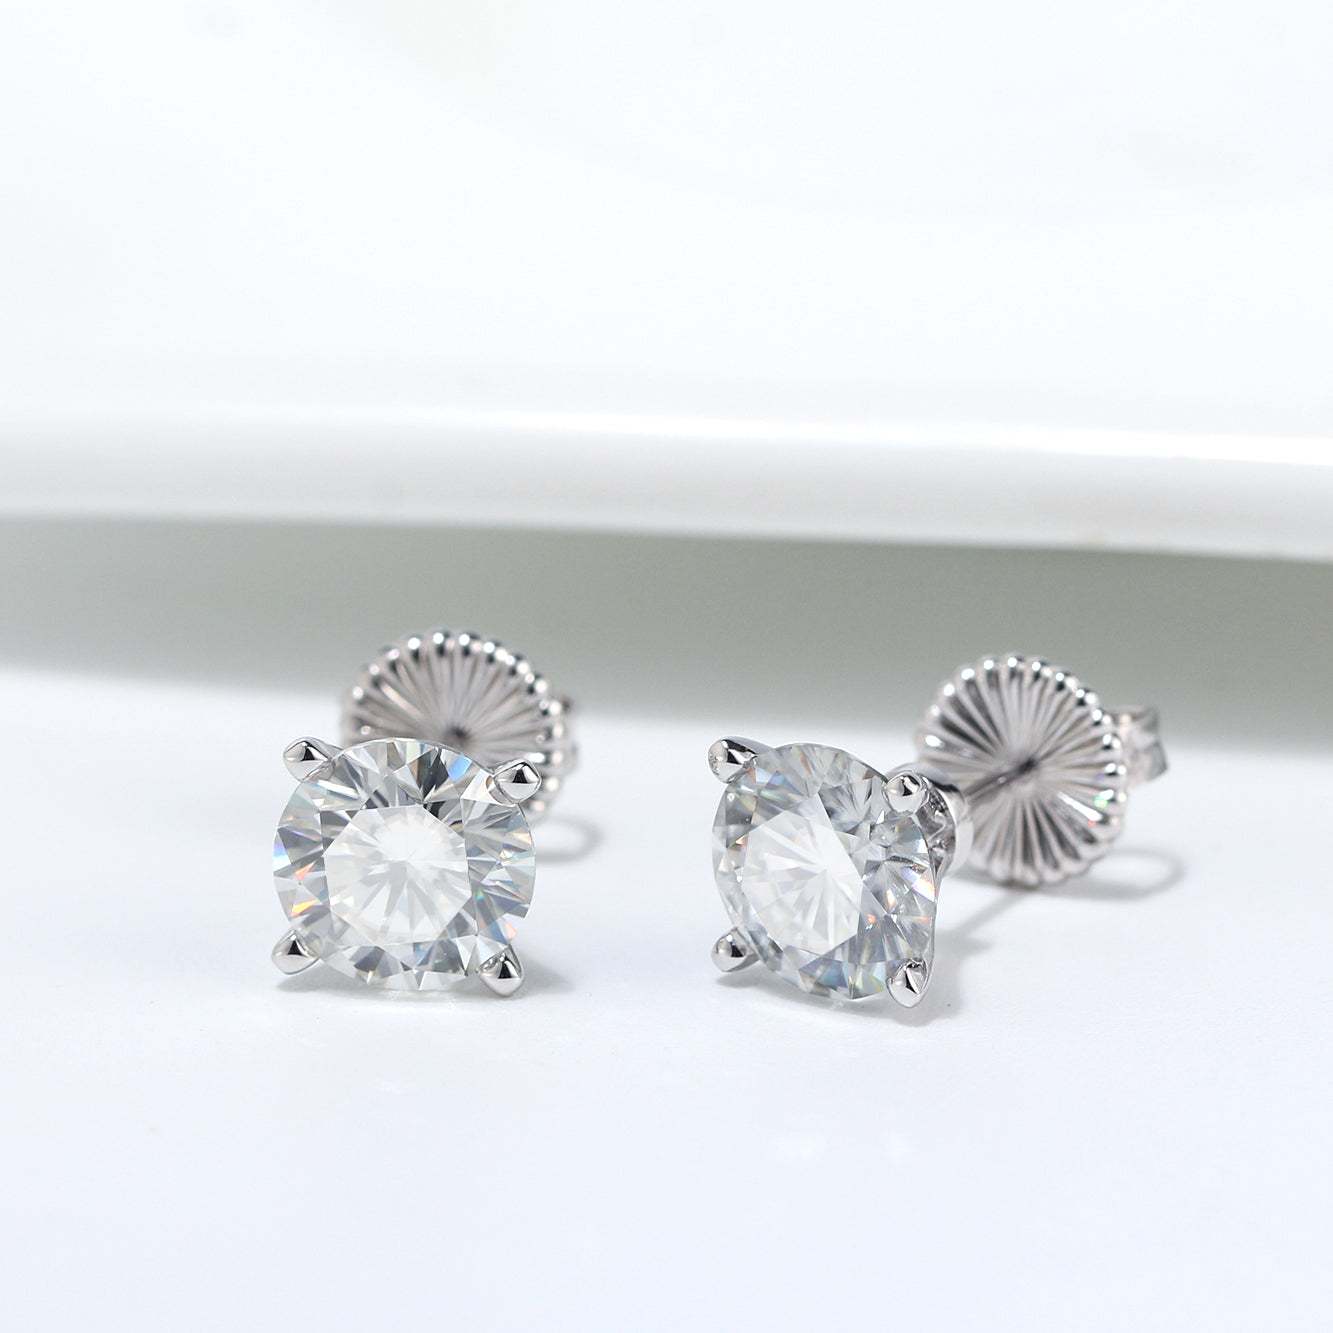 Amore 2 CTW or 4 CTW DEW Solitaire Moissanite Stud Earrings Ginger Lyne Collection Fashion Jewelry for Women Gift Idea